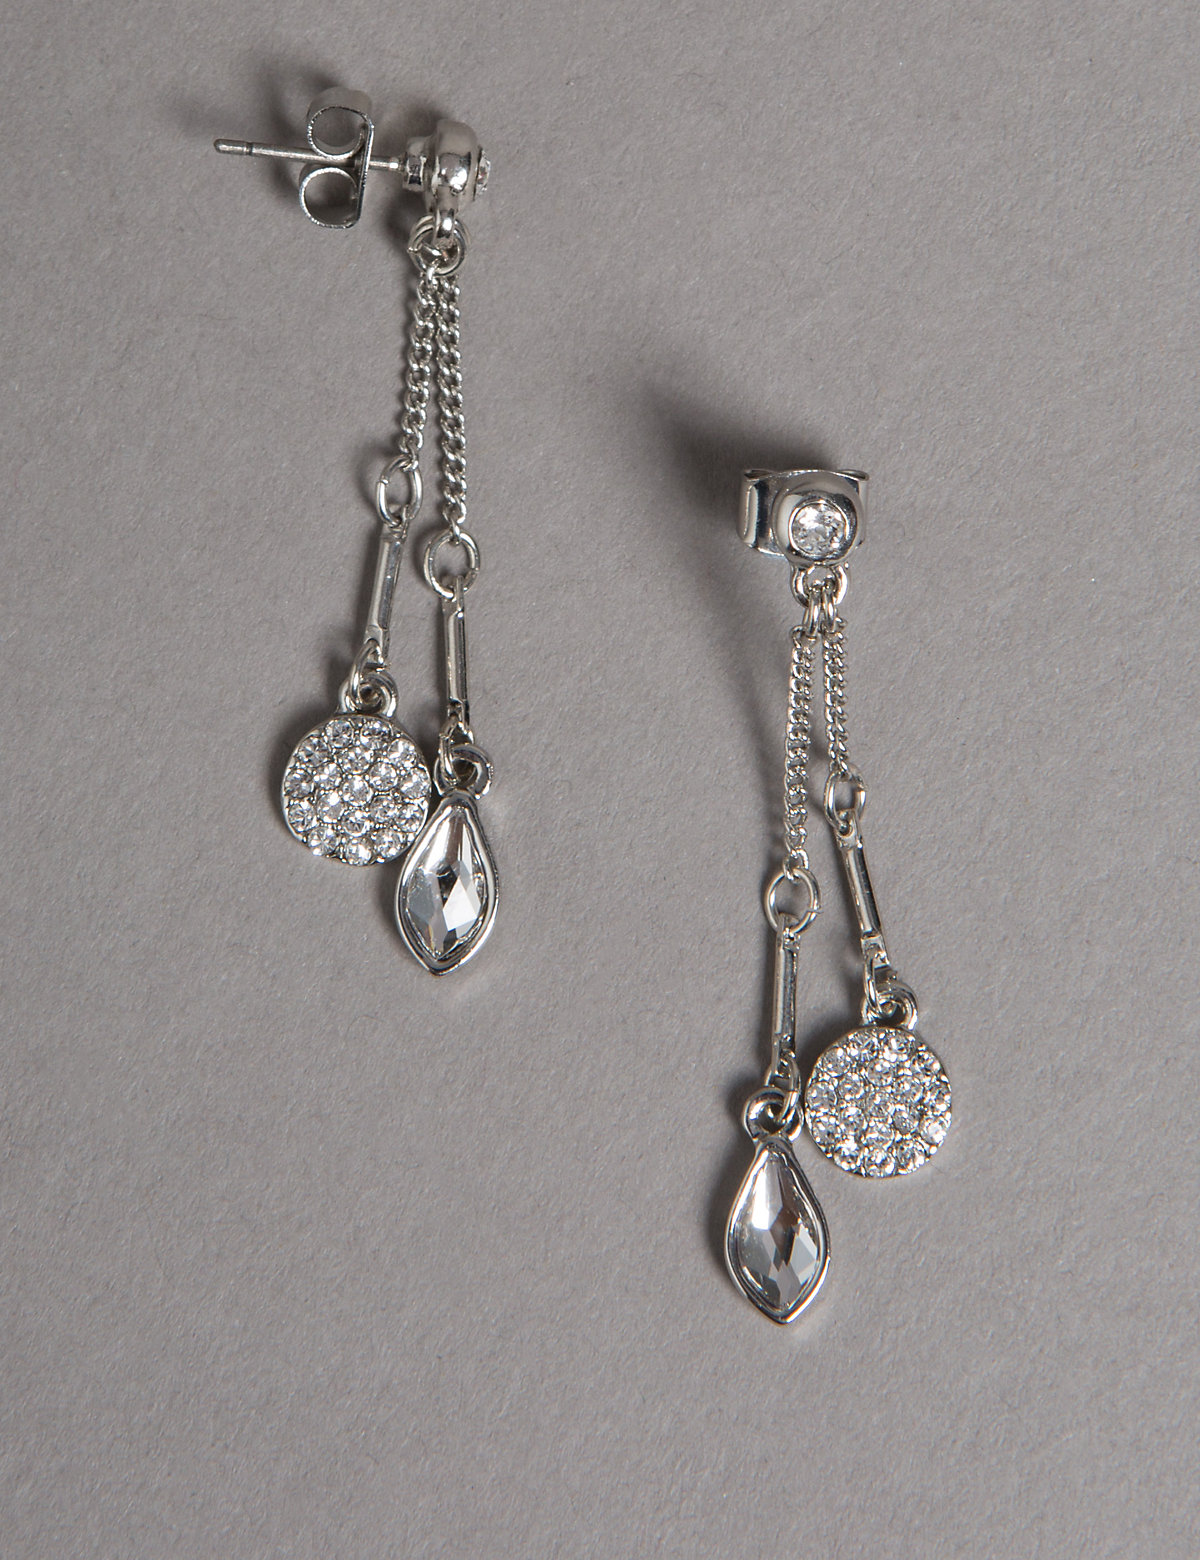 Autograph Double Drop Earrings MADE WITH SWAROVSKI ELEMENTS